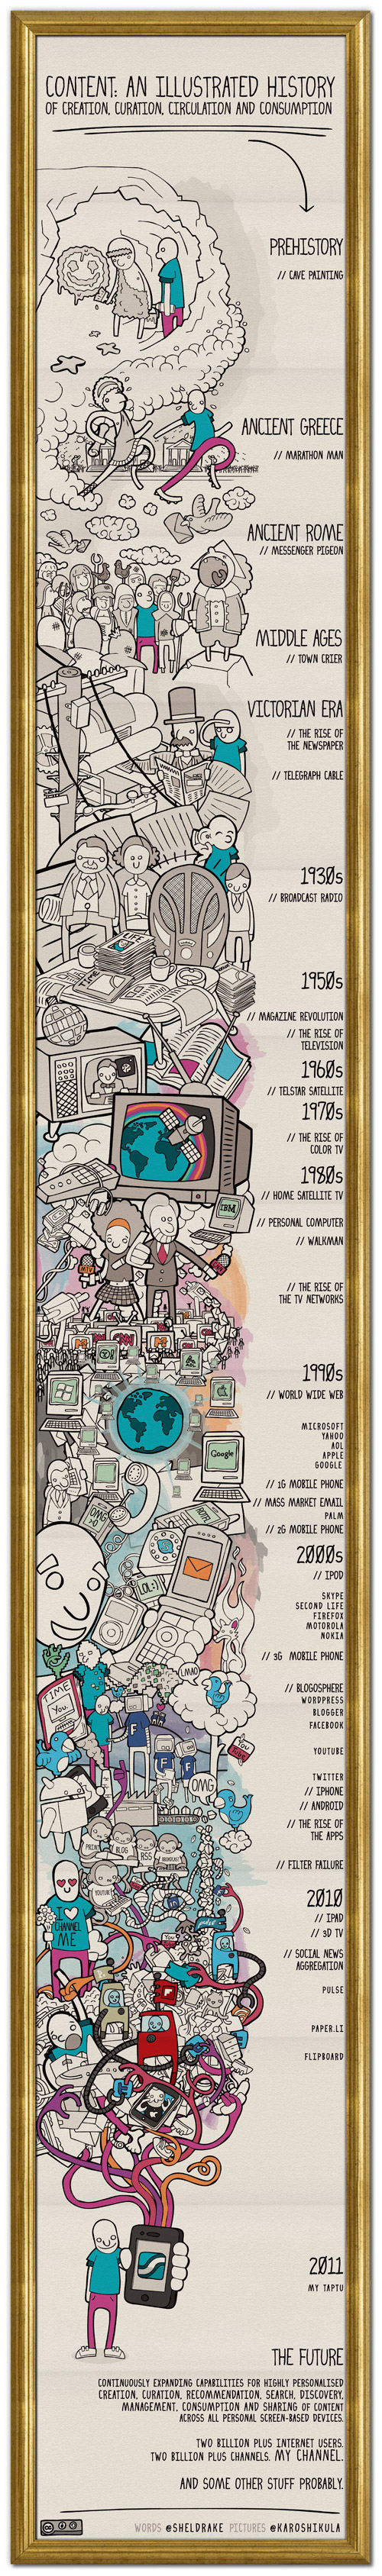 An Illustrated Evolution Of Media Content (Infographic) 1